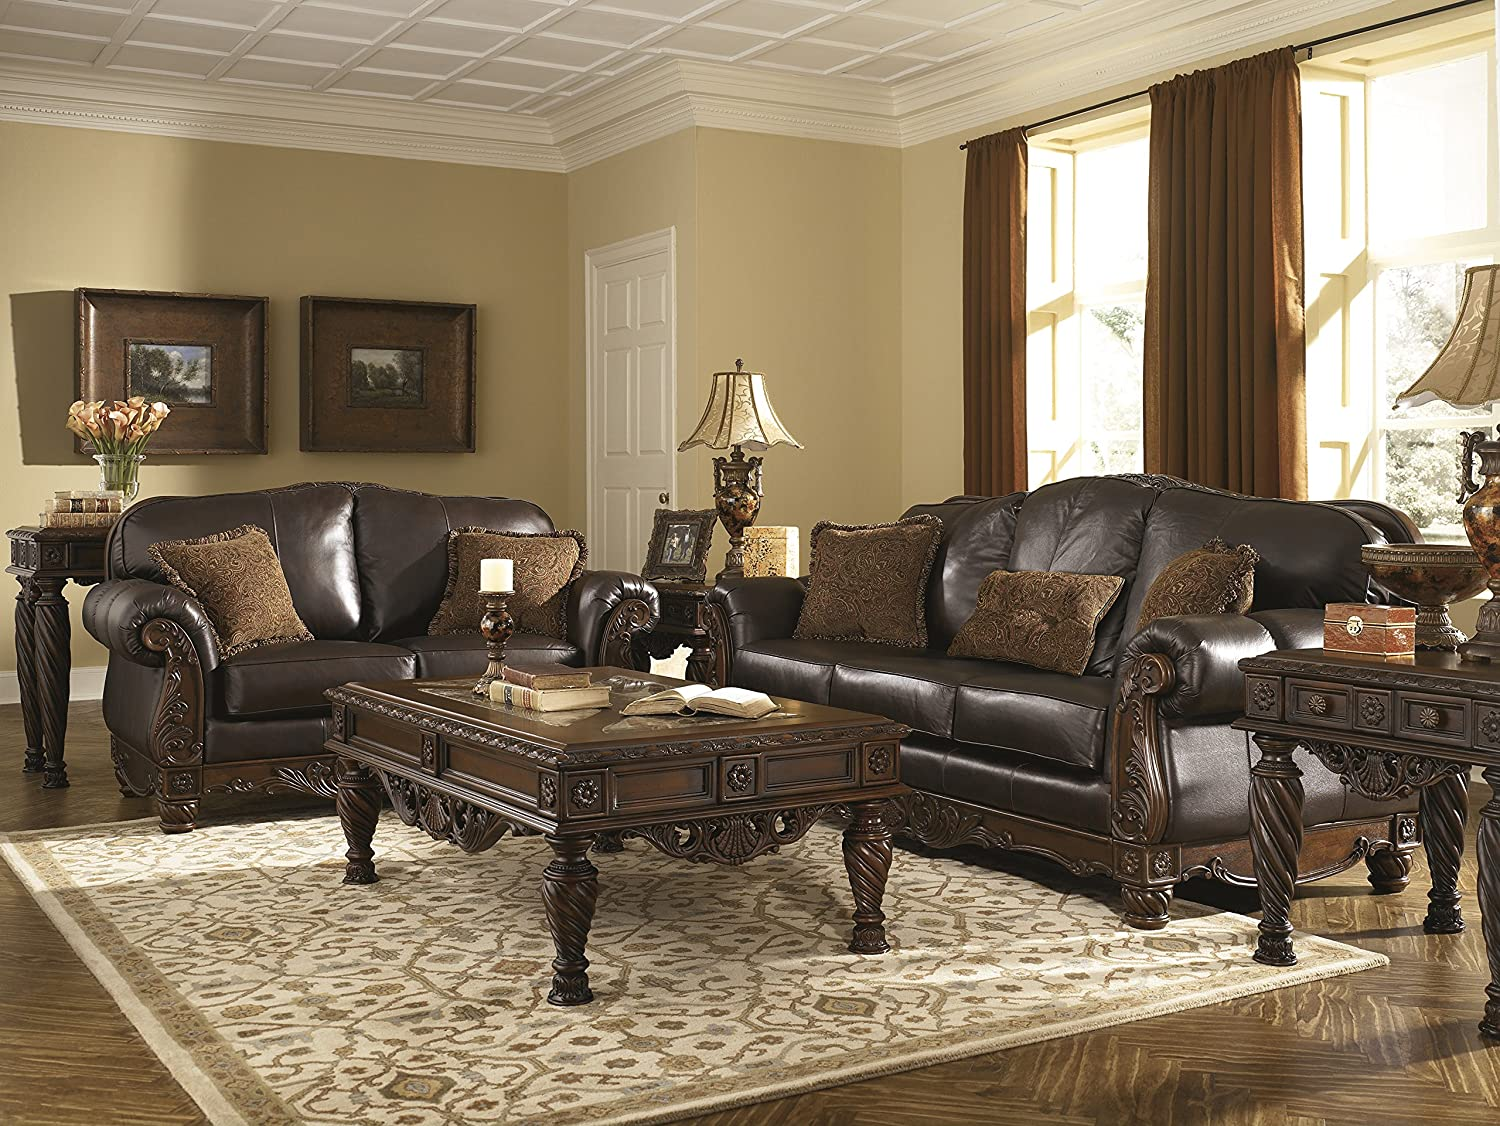 North Shore Living Room Set Amazoncom North Shore Living Room Set By Ashley Furniture